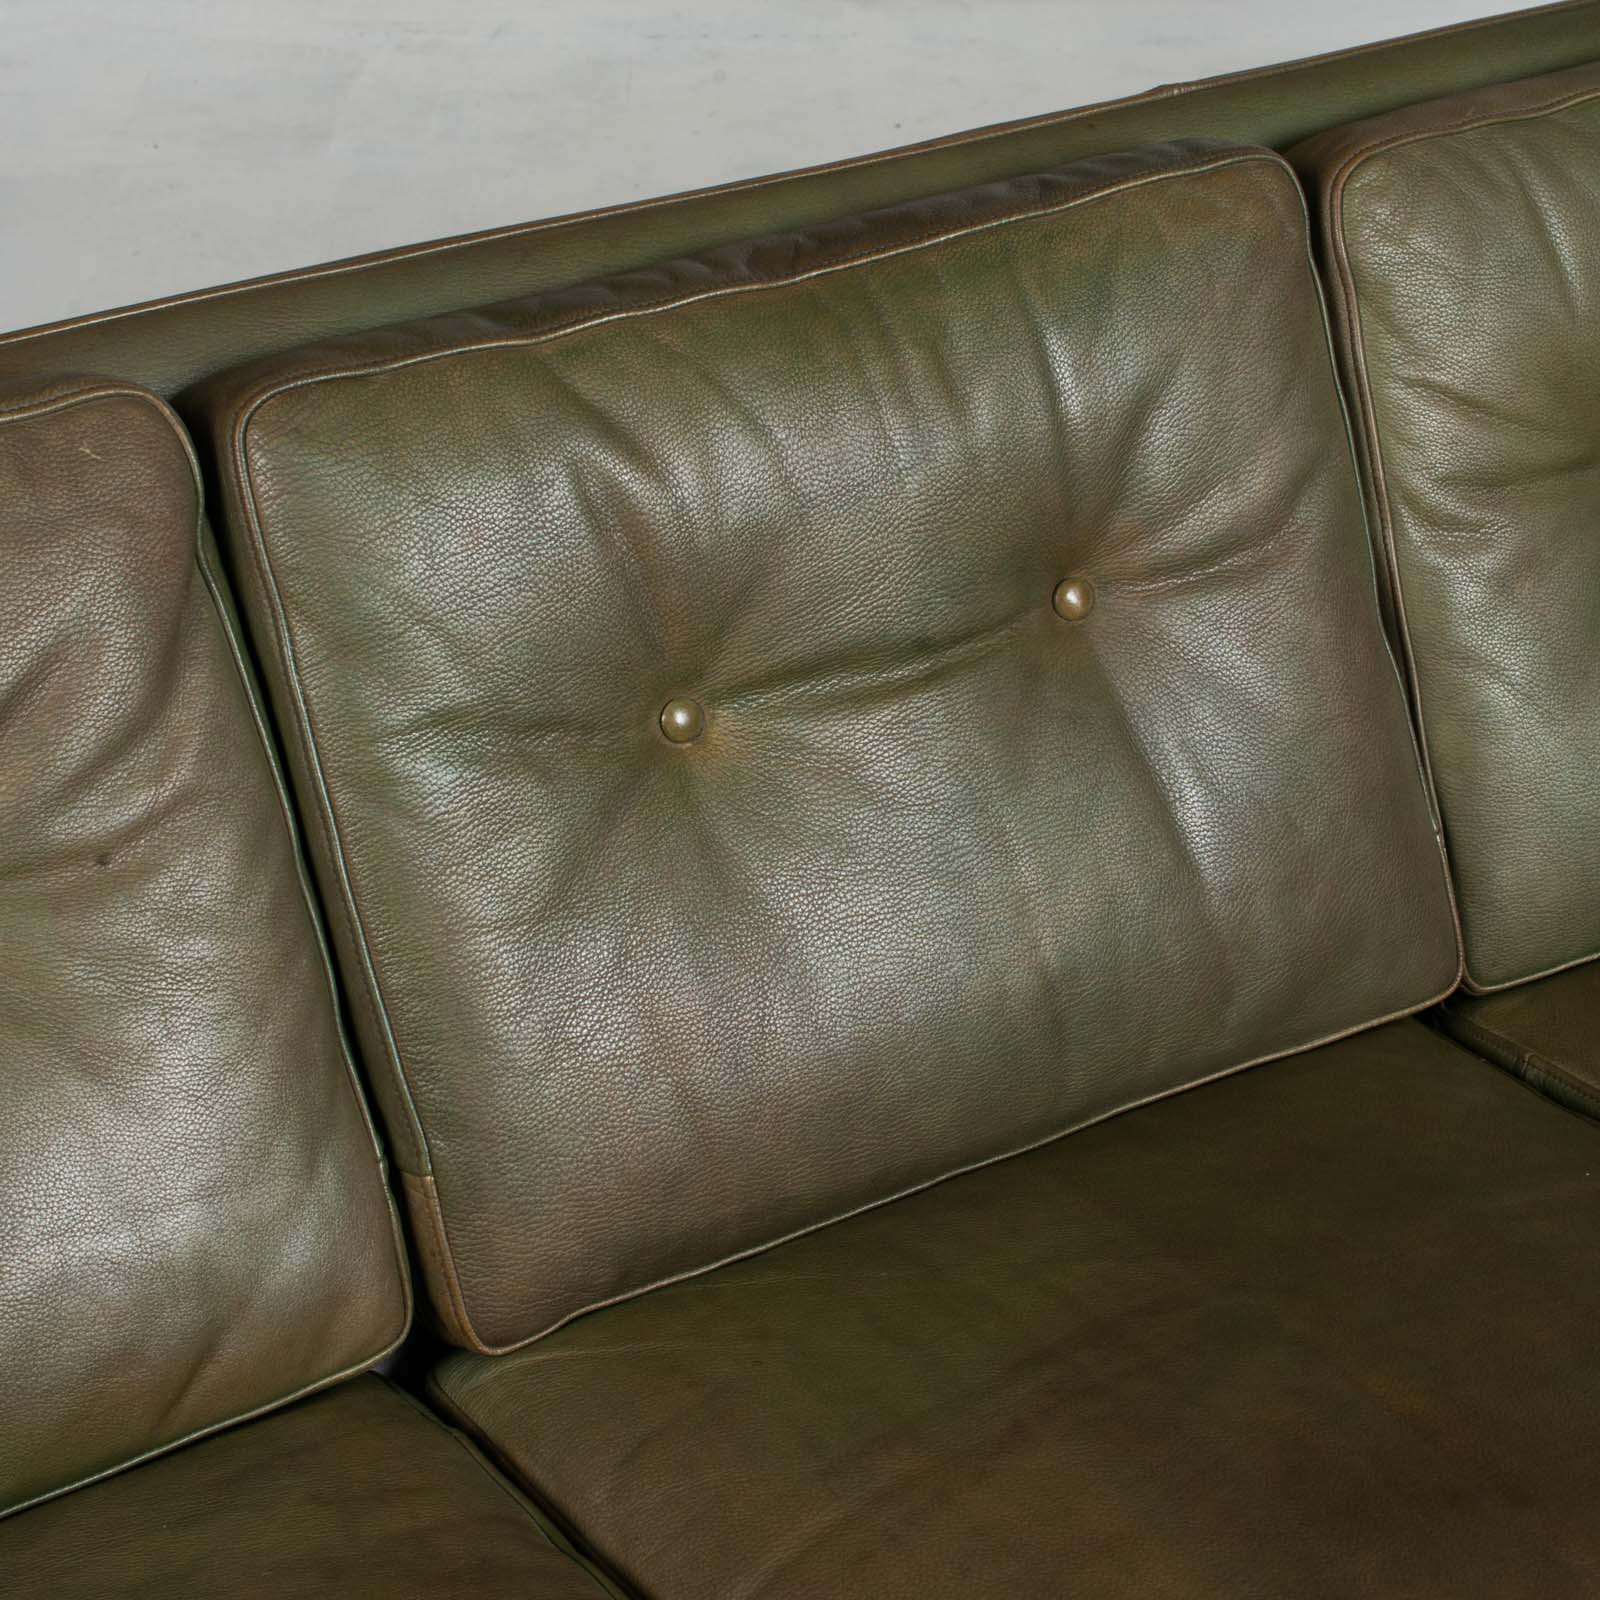 4 Seat Sofa In Olive Leather 1960s Denmark 07